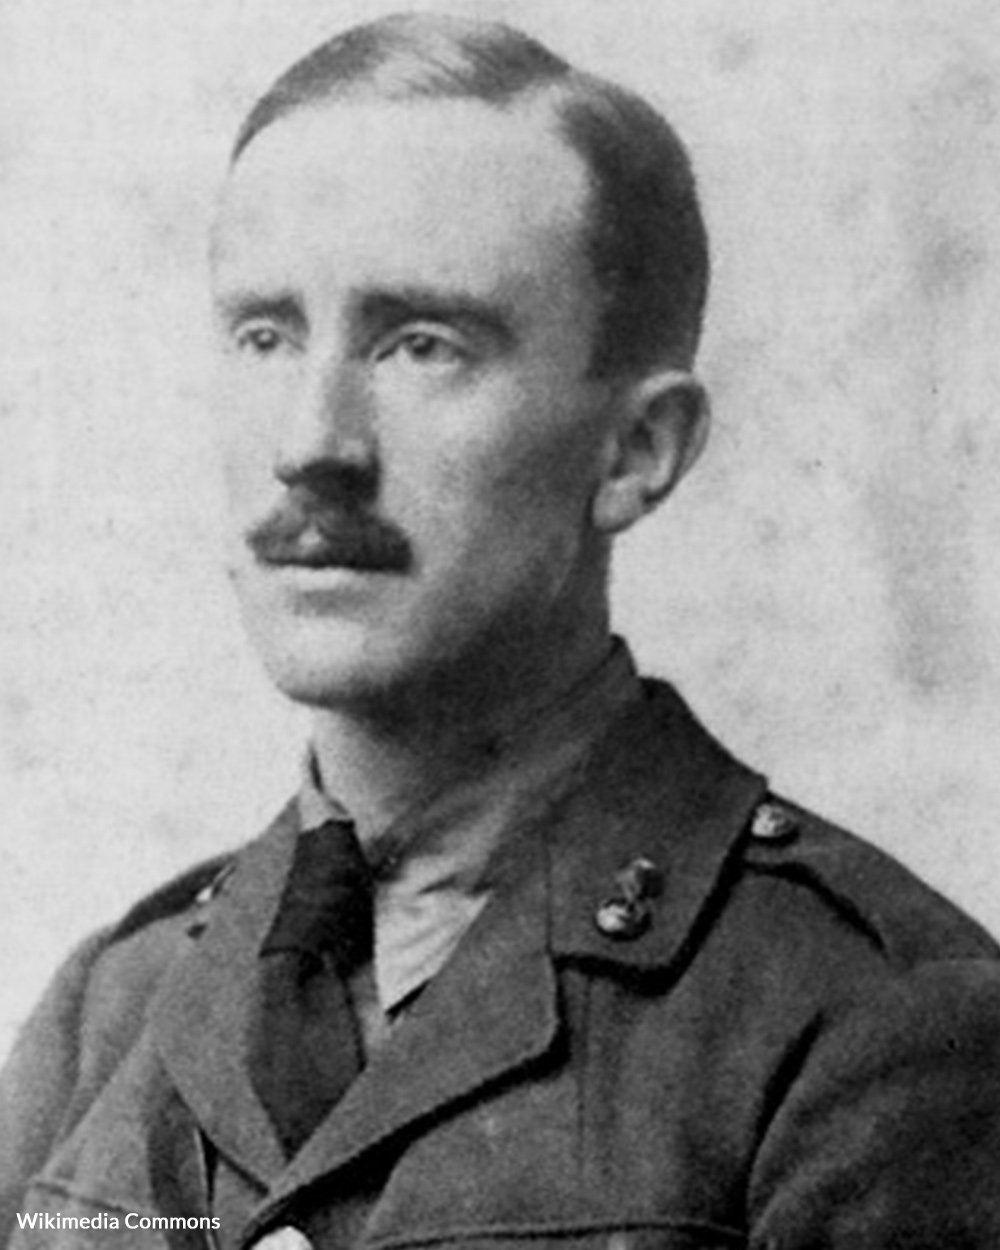 J.R.R. Tolkien served as a Signal Officer in WWI.